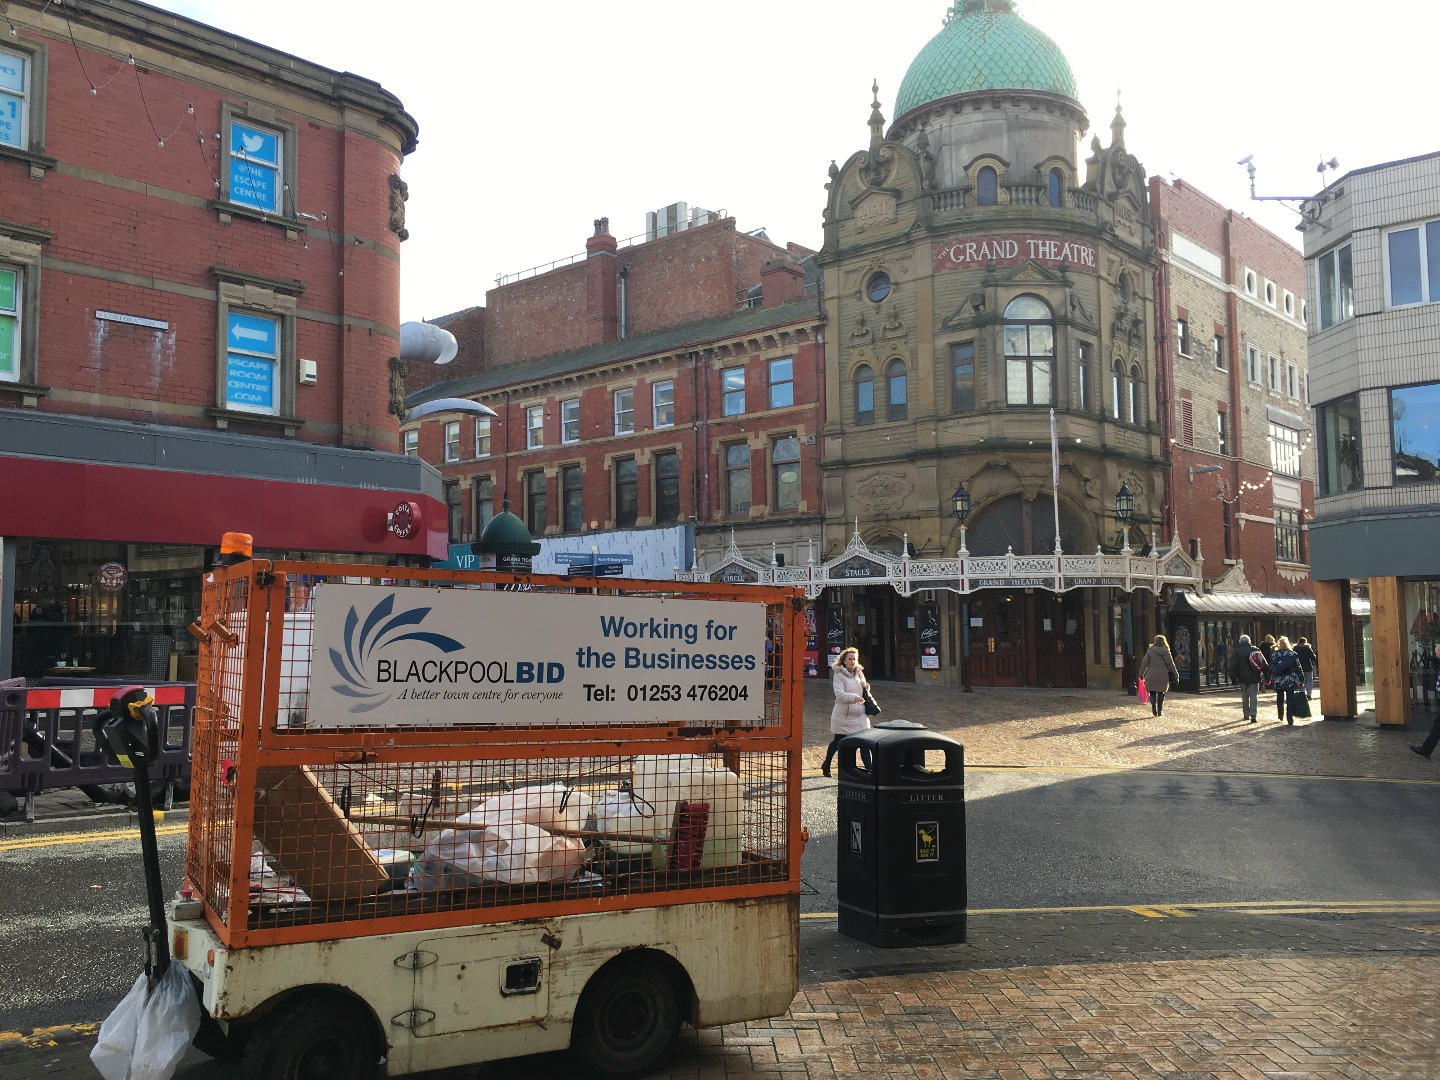 Blackpool BID Cleaning truck